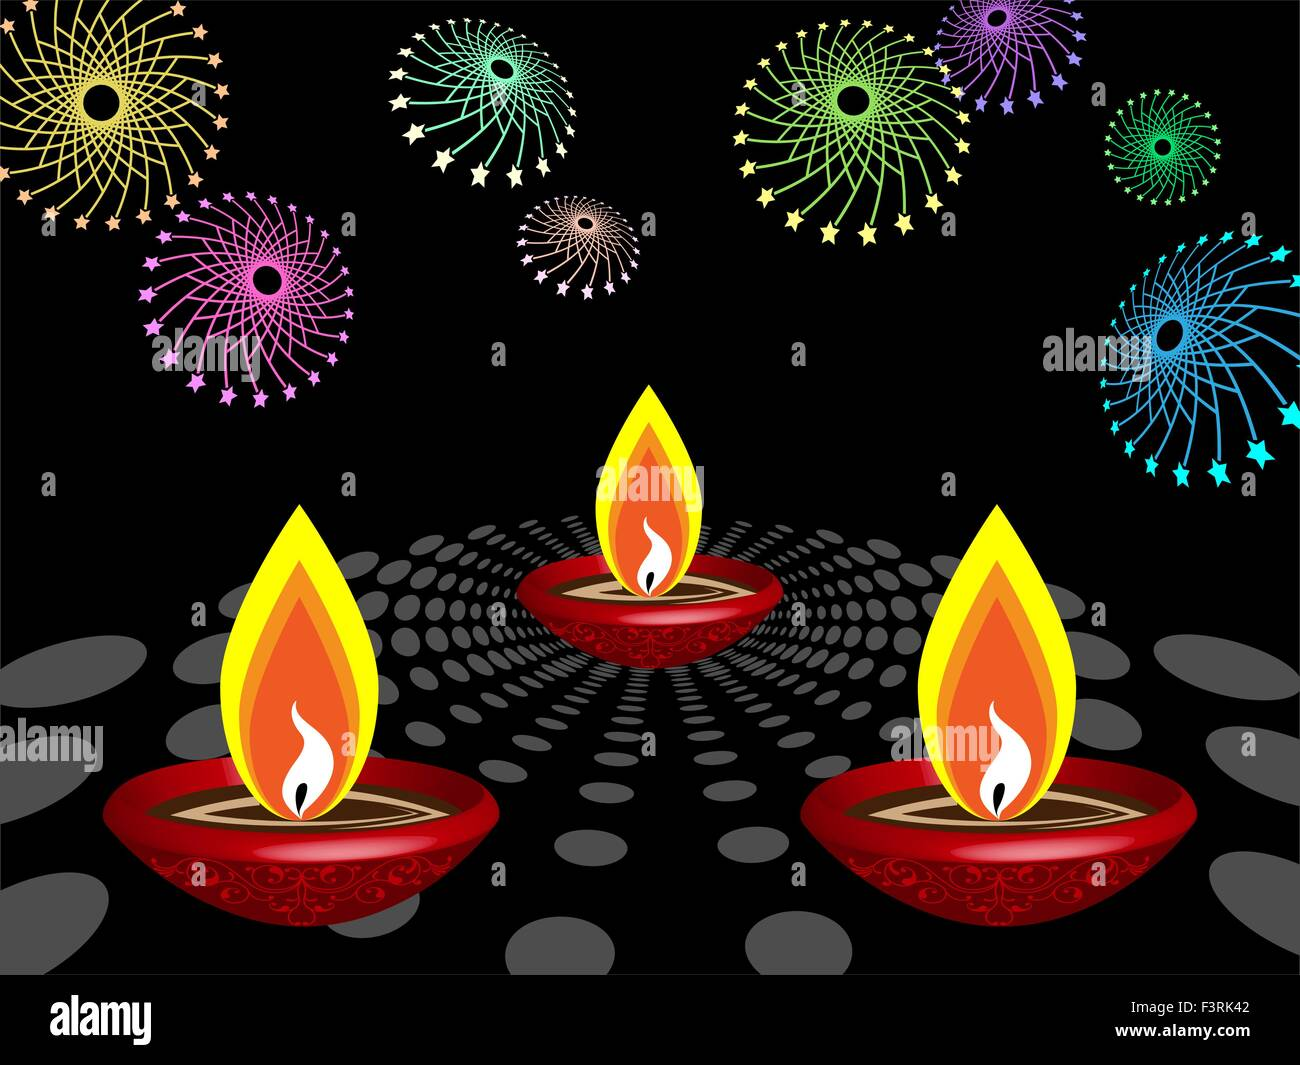 Diwali Greeting Fire Works Vector Art Stock Vector Art